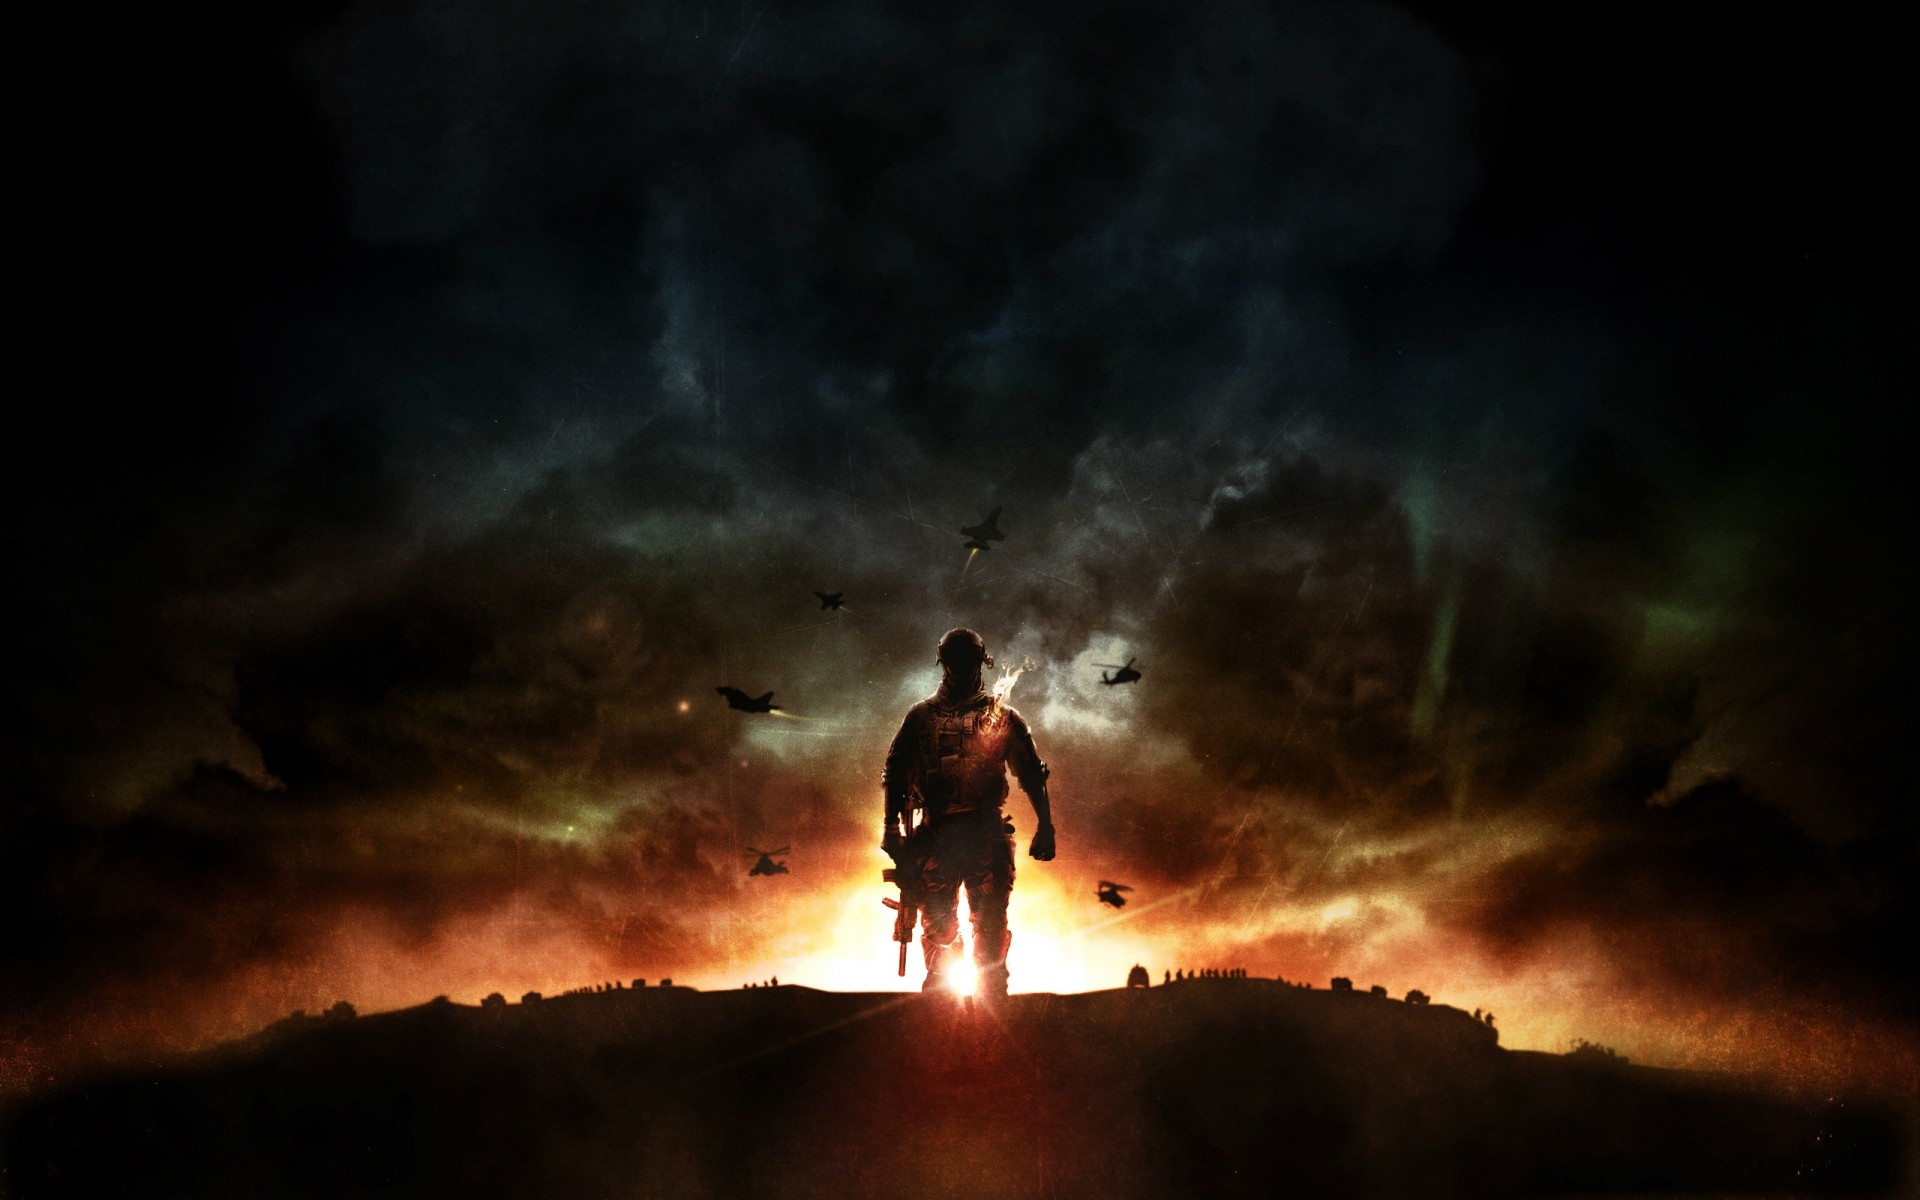 battlefield sunset flame smoke dawn dusk silhouette evening man outdoors fog light sky battlefield 4